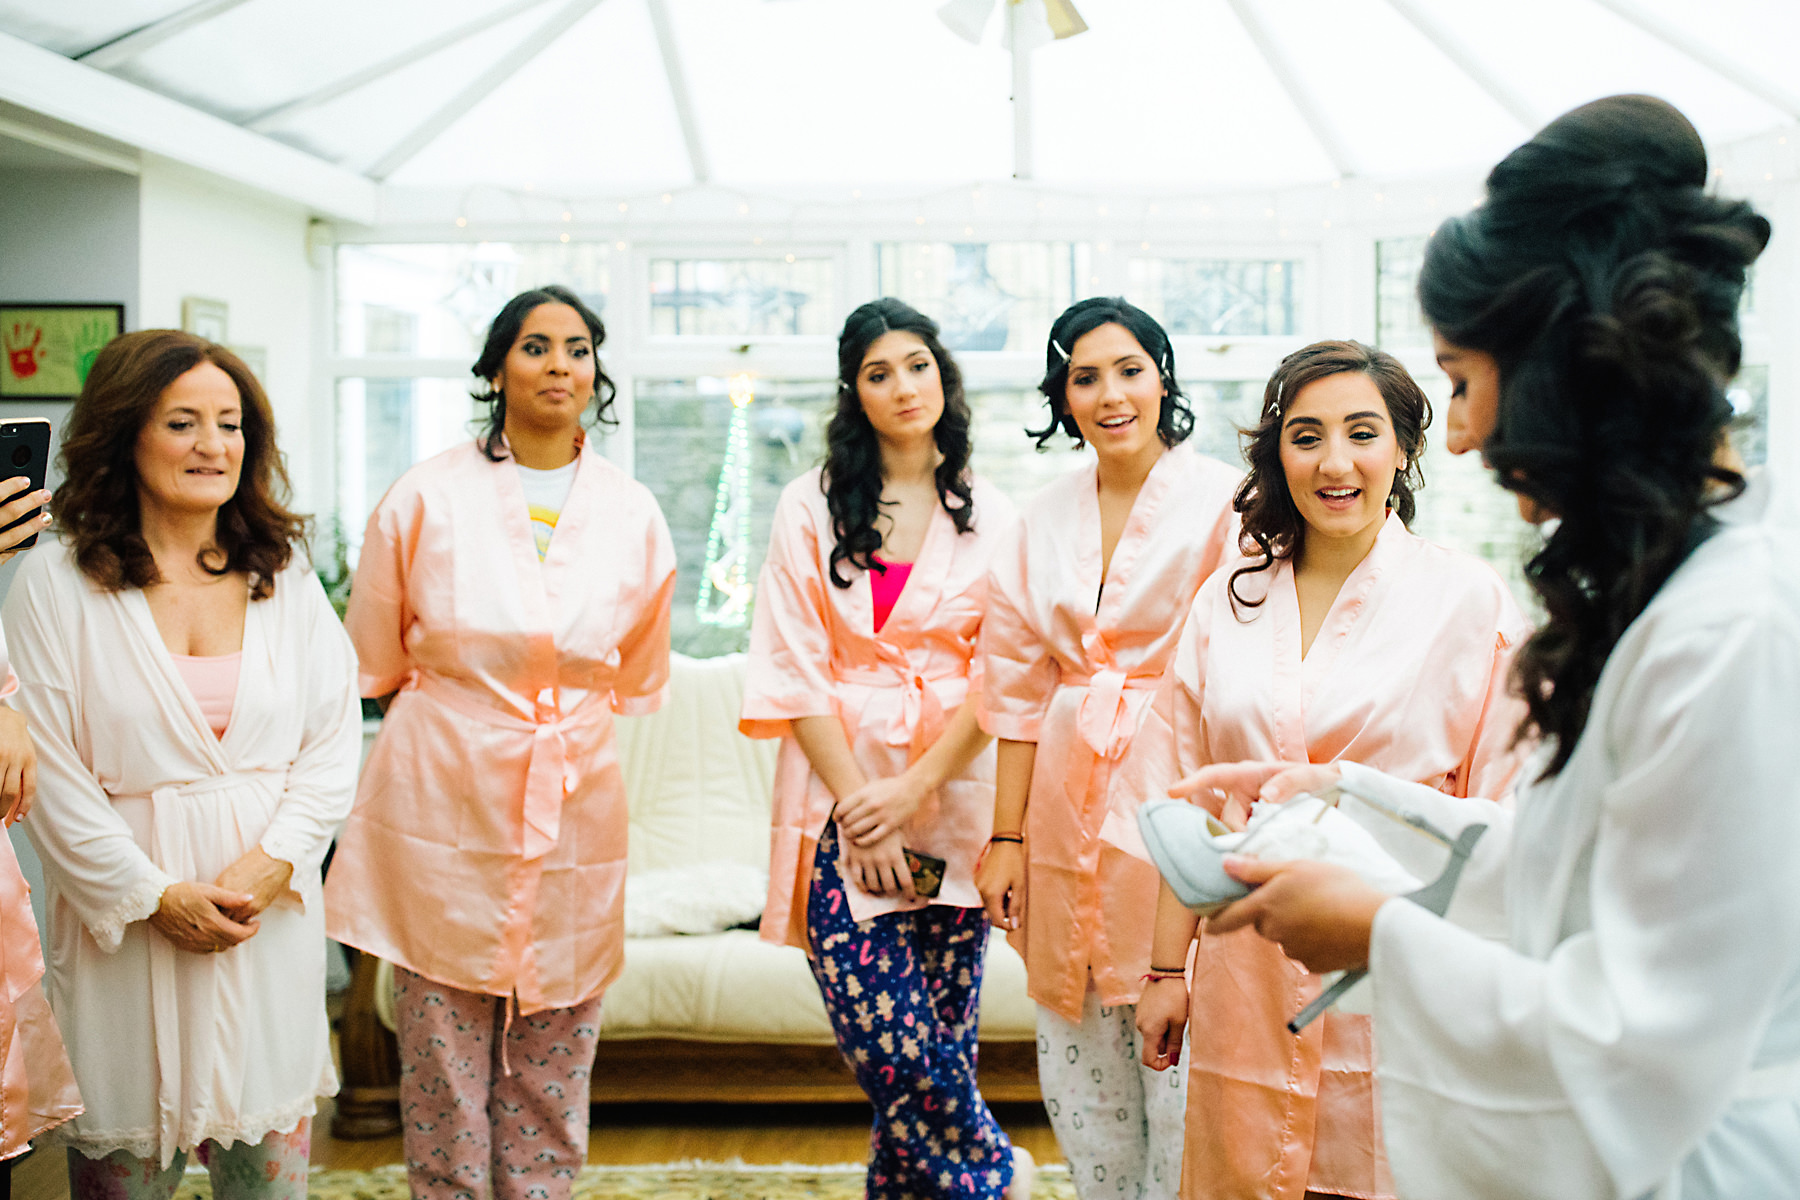 bridesmaids in wedding robes